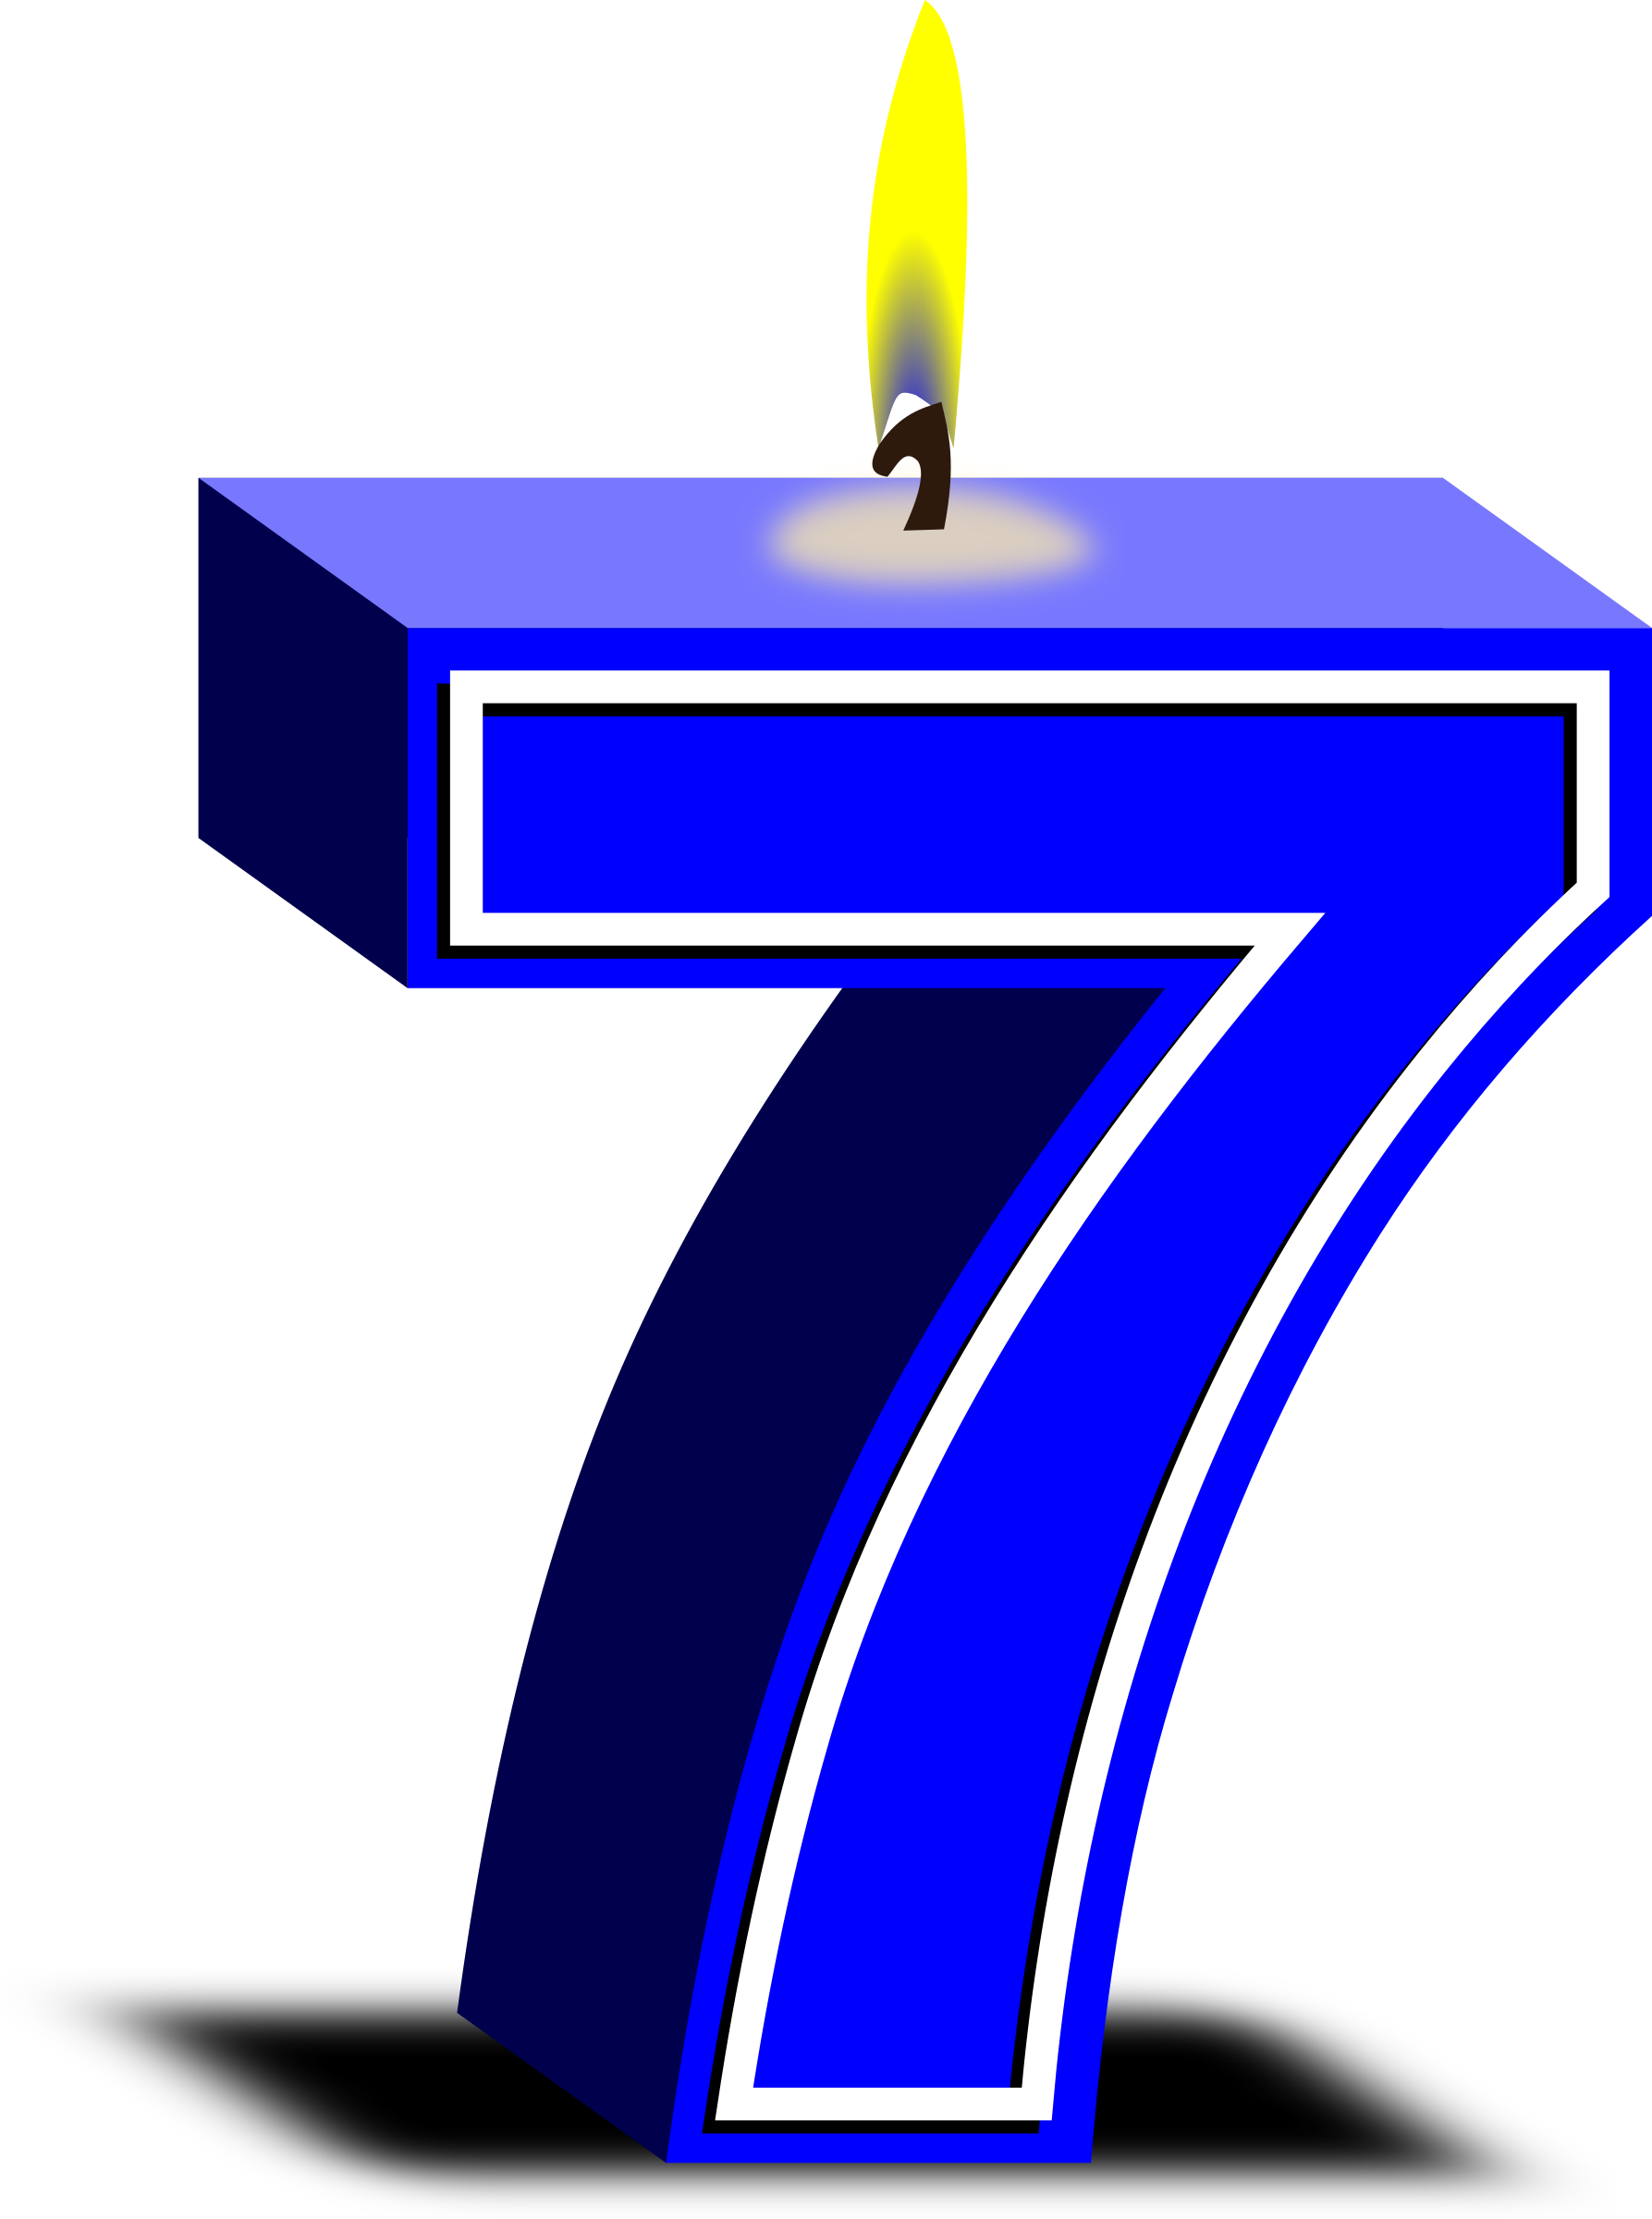 7 clipart blue. Birthday candle big image